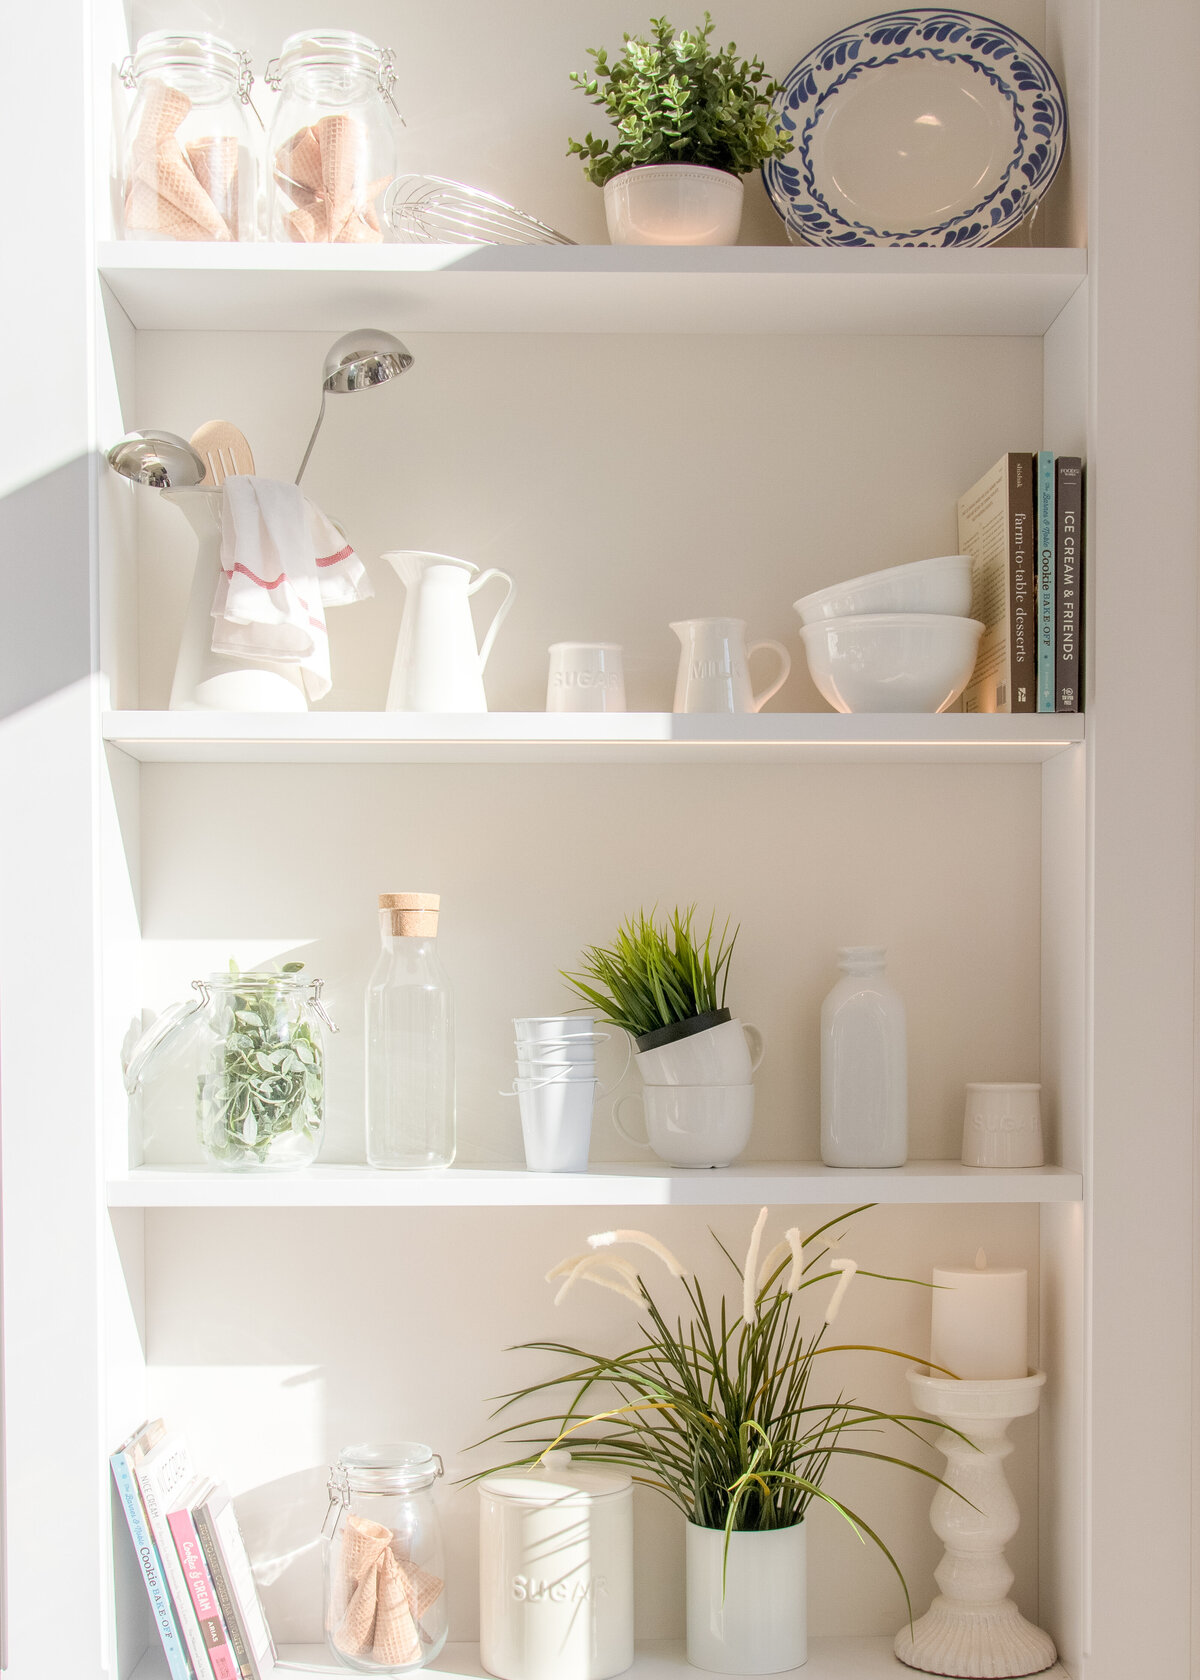 A white pantry is decorated with plates and bowls alongside herbs and a glass bottle.